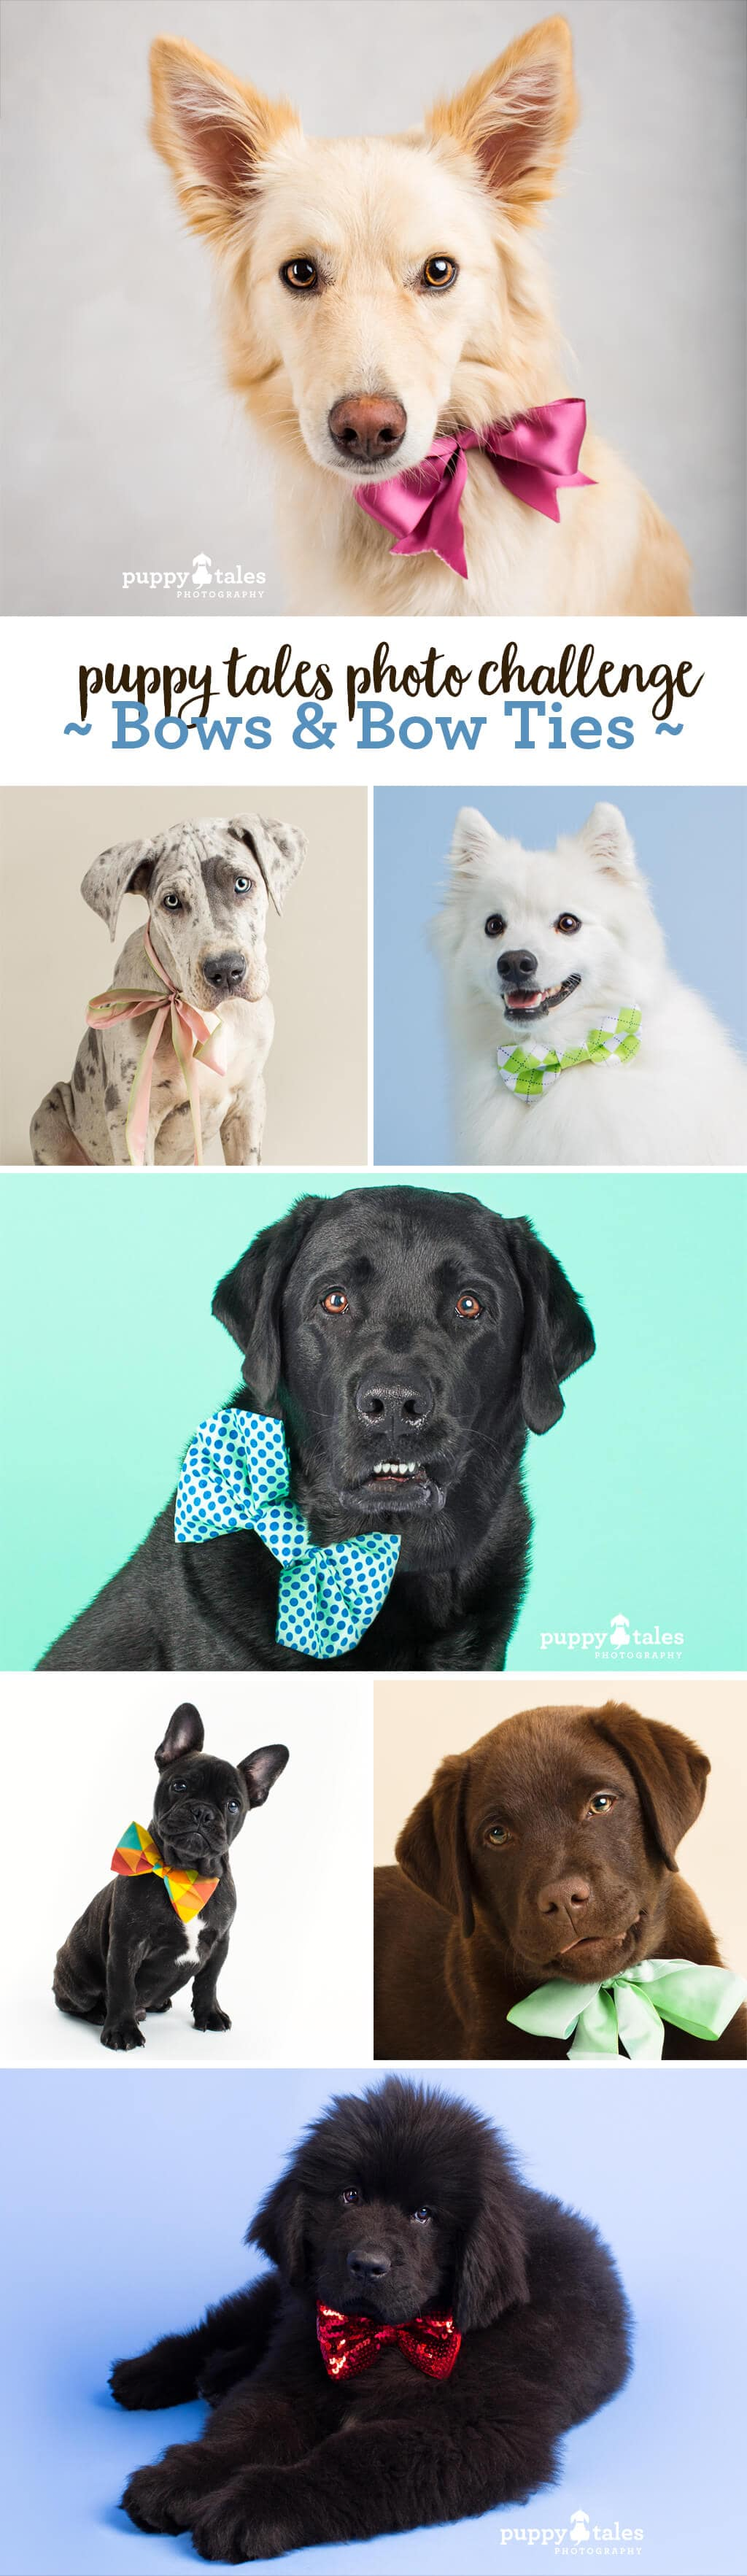 Puppy Tales Photo Challenge ~ Bows & Bow Ties